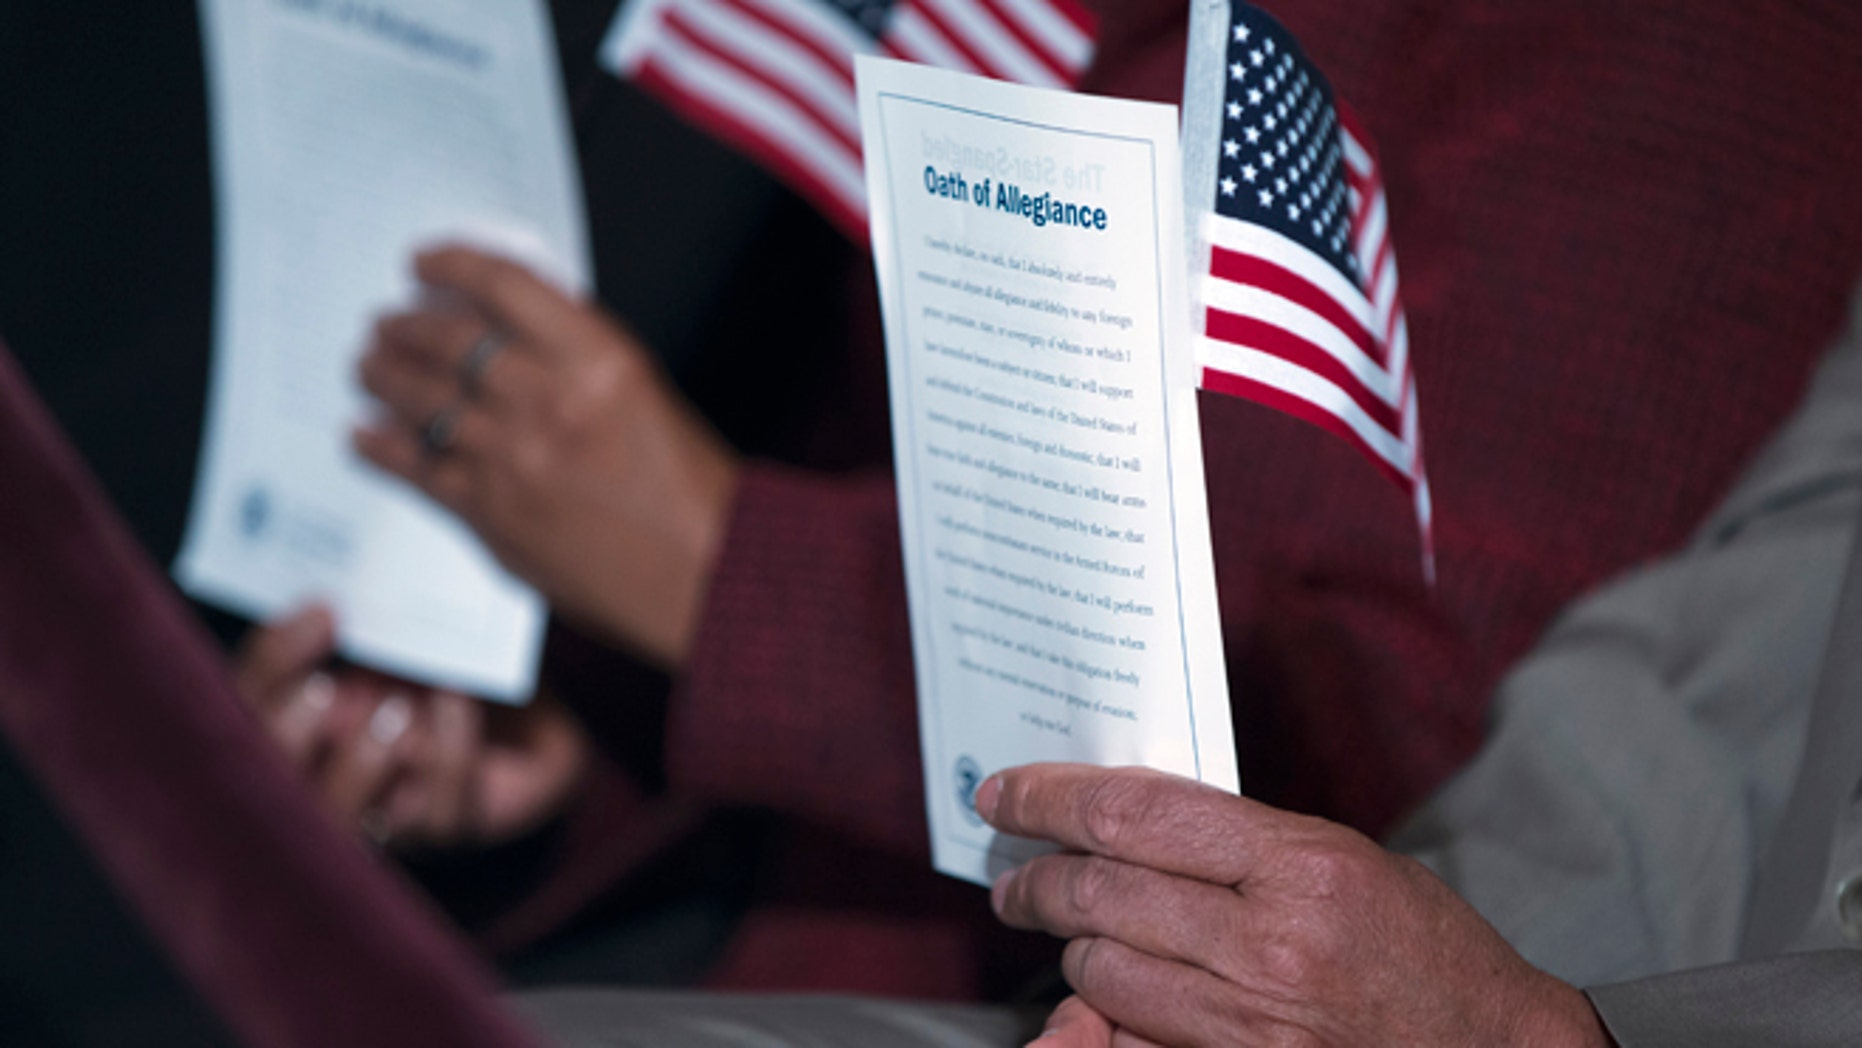 """In this Dec. 15, 2015, photo, participants hold the """"Oath of Allegiance"""" and American flags during a naturalization ceremony attended by President Barack Obama at the National Archives in Washington. More Americans favor than oppose a pathway to citizenship for immigrants who are living in the United States illegally, a new Associated Press-GfK poll shows. While most Republicans oppose such a path to citizenship, it doesn't seem to be a dealbreaker issue for them.  (AP Photo/Evan Vucci)"""